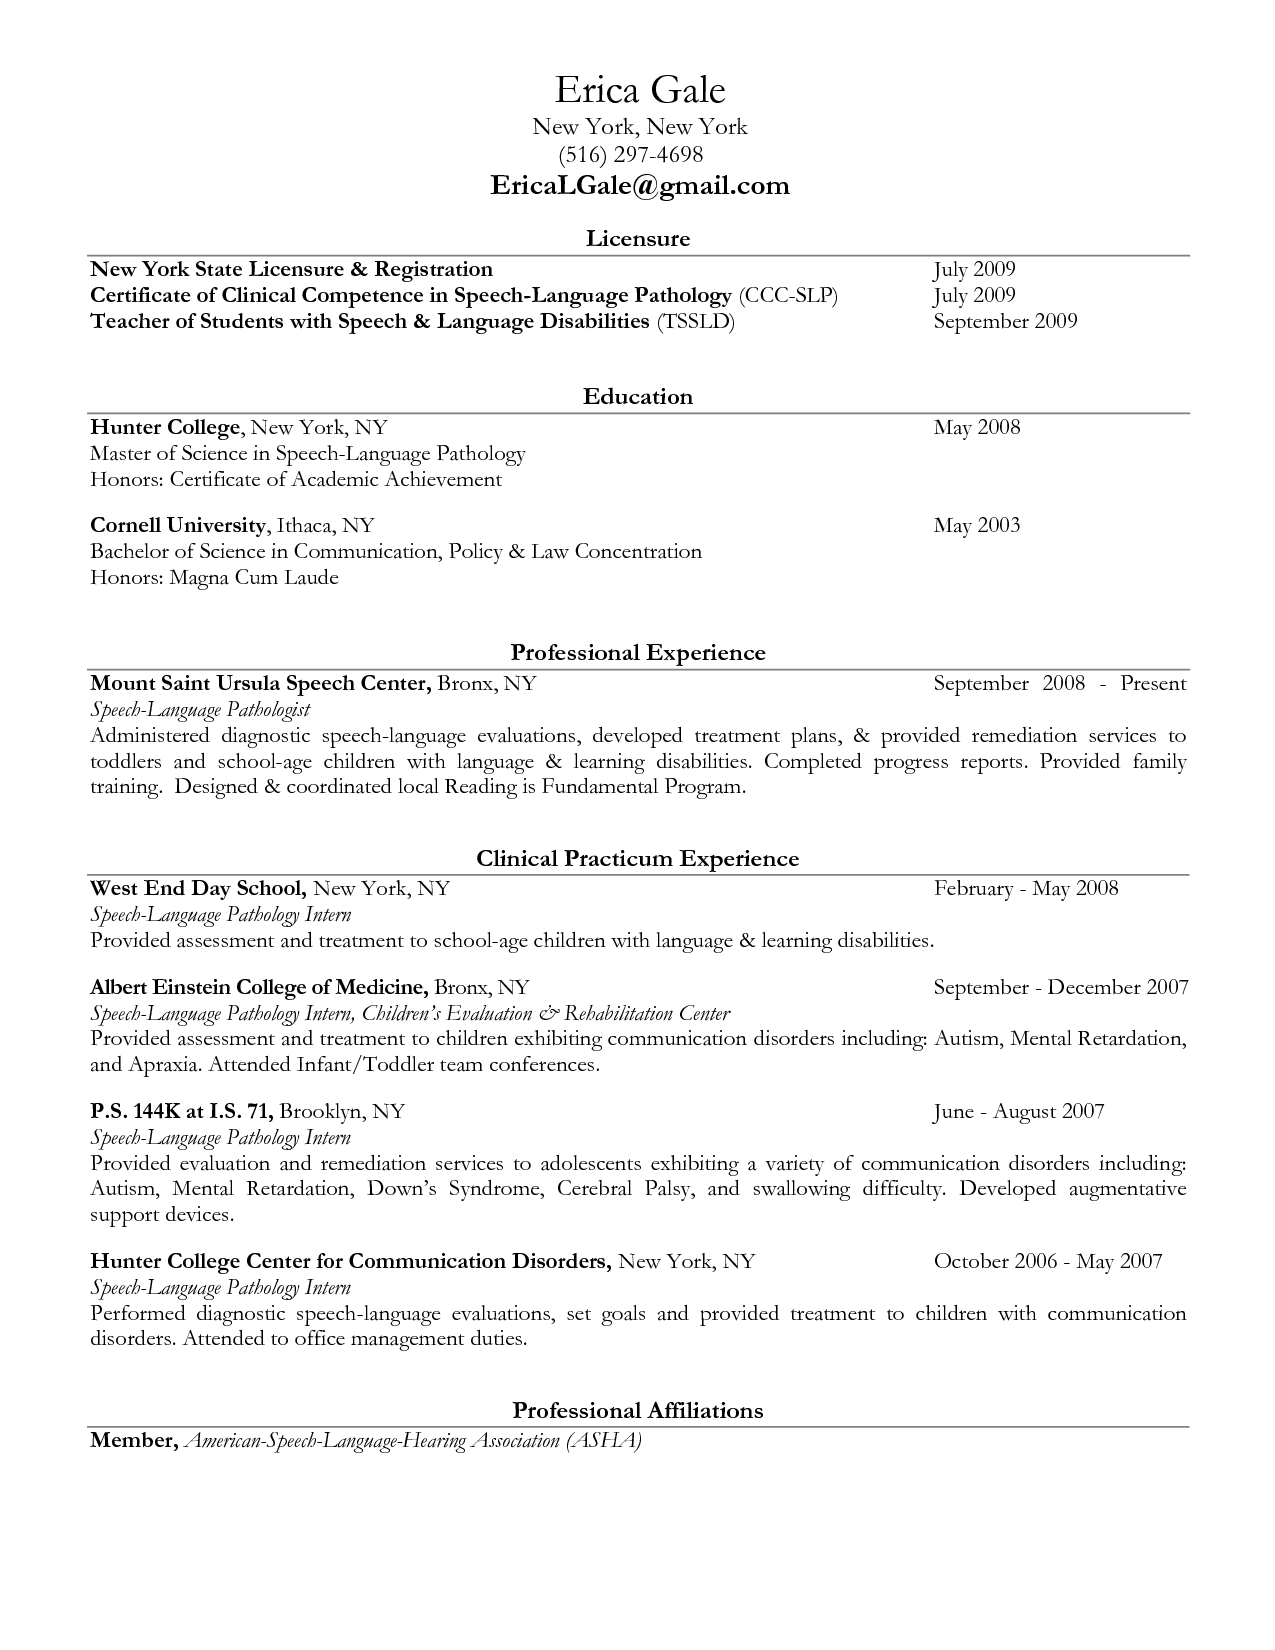 Speech language pathology resume cover letter